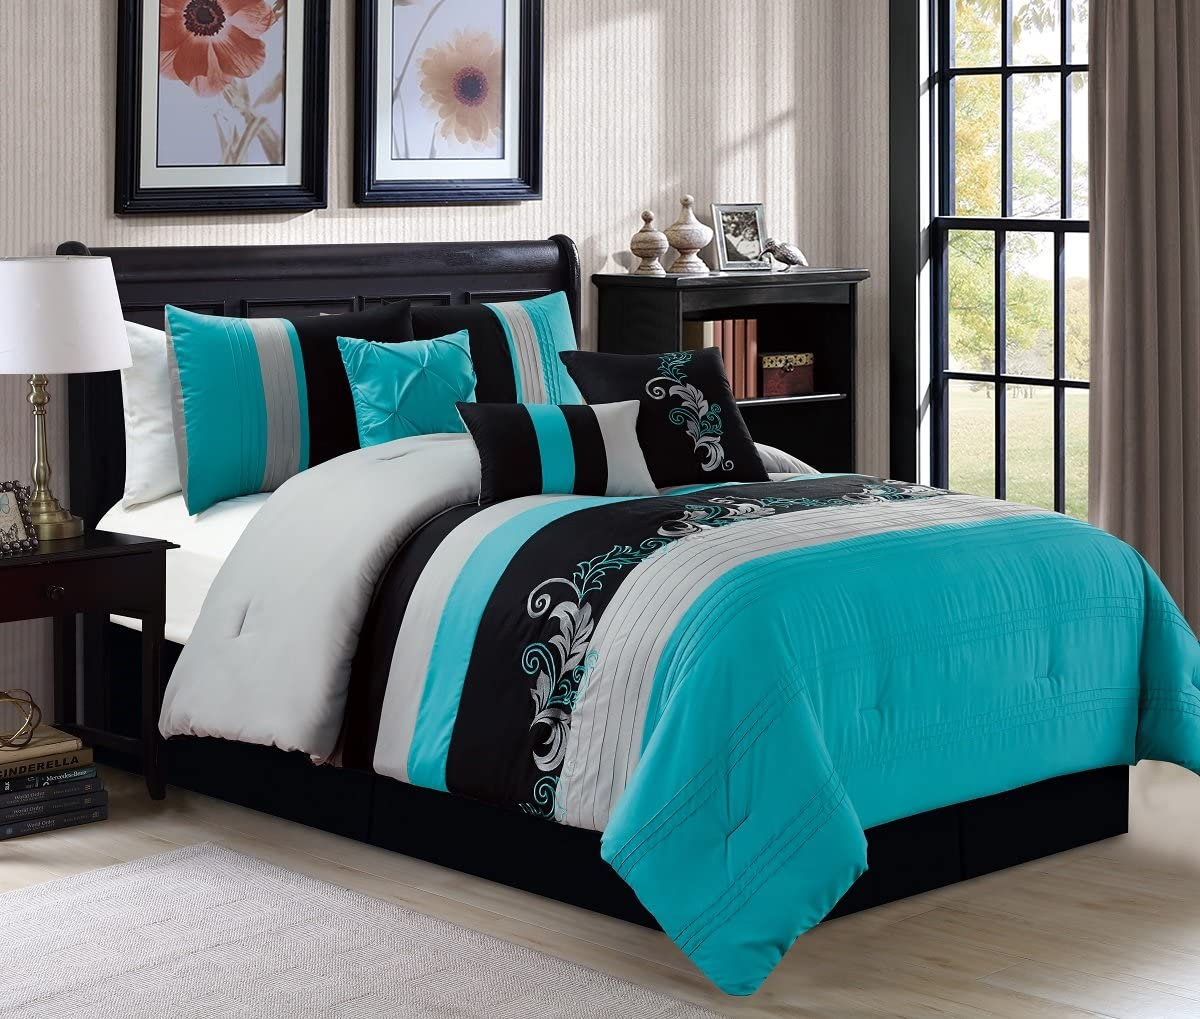 Napa 7-Piece Luxury Leaves Scroll Embroidery Bedding Comforter Set (Queen, Teal/Gray/Black)